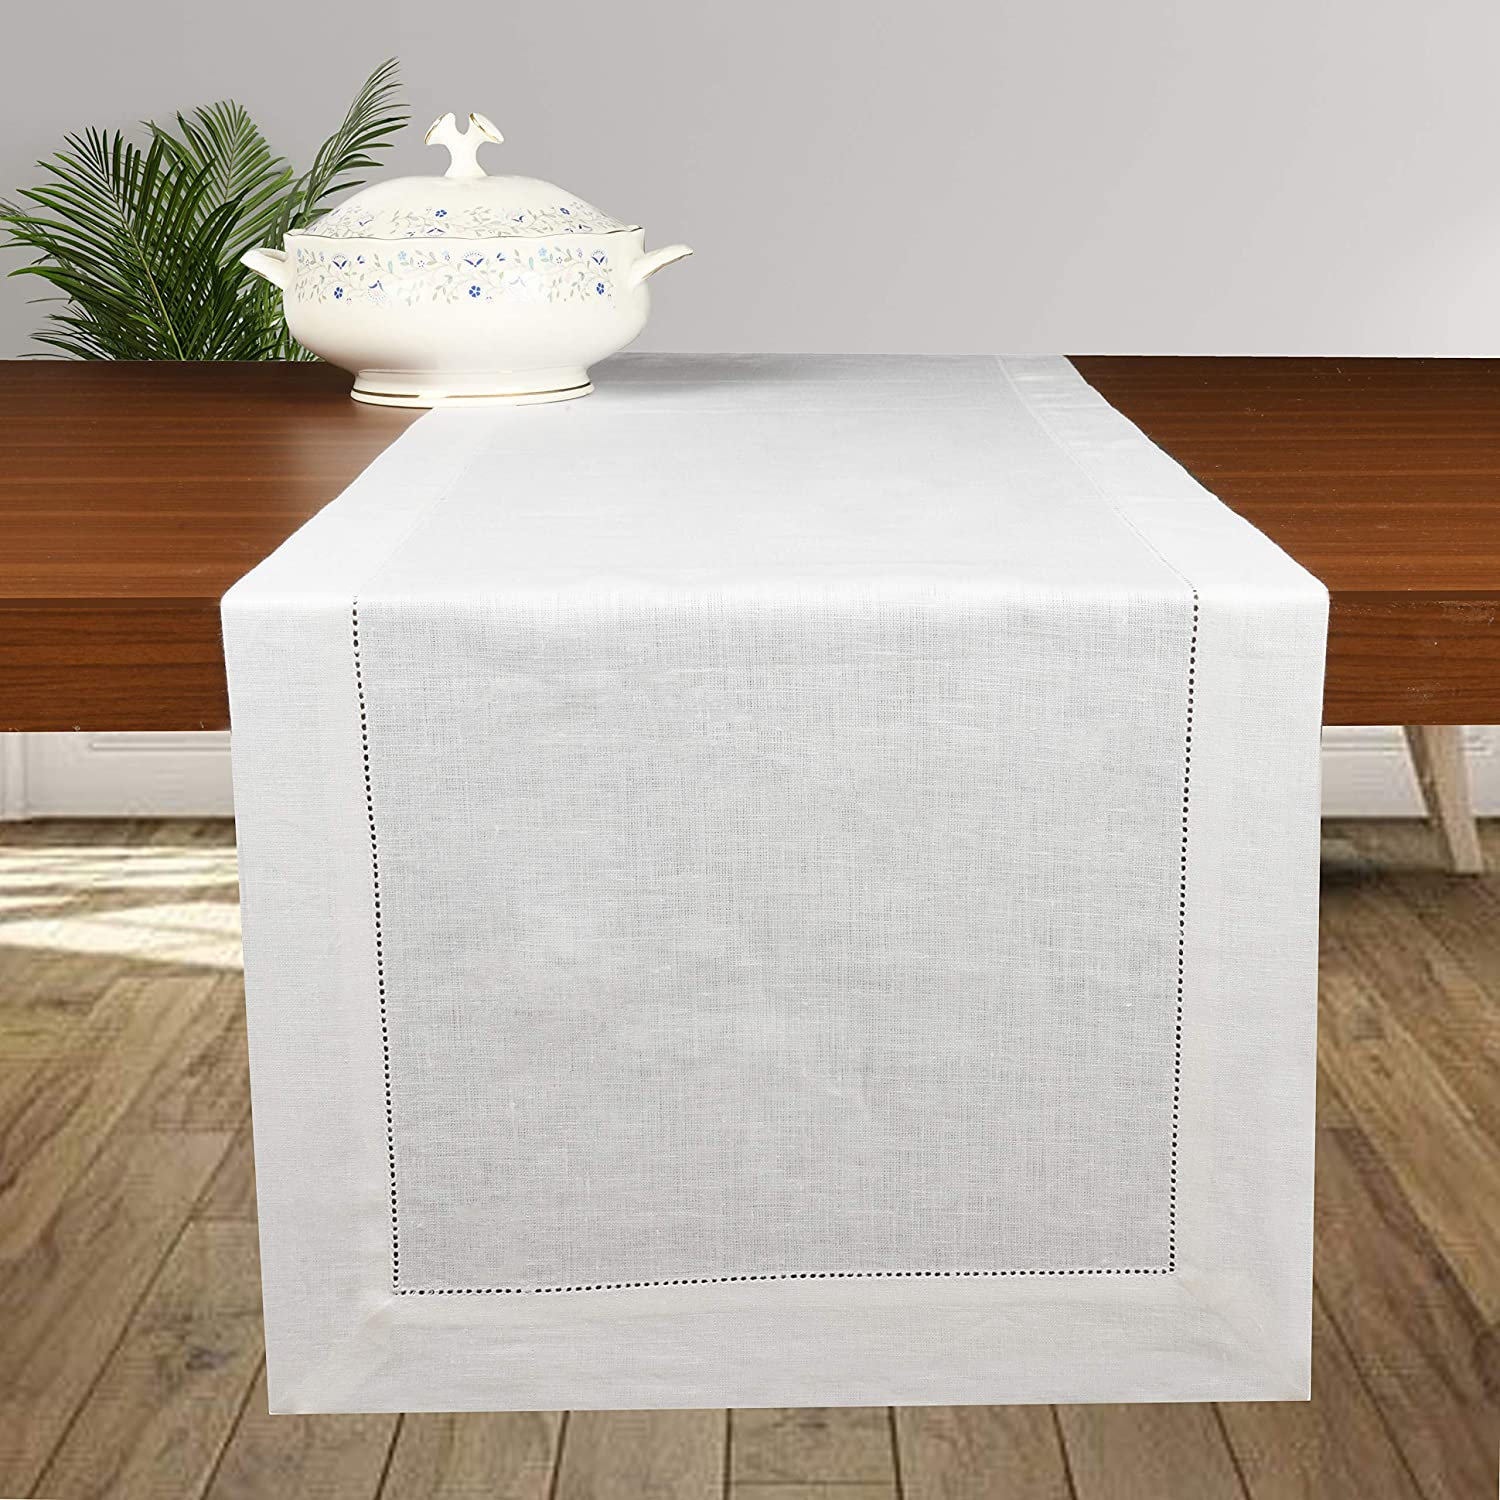 D'Moksha Homes 100% Pure Linen Table Runner/Dresser Scarf - 14 x 90 Inch, Handcrafted from European Flax, Machine Washable, Classic Hemstitch - White: Home & Kitchen